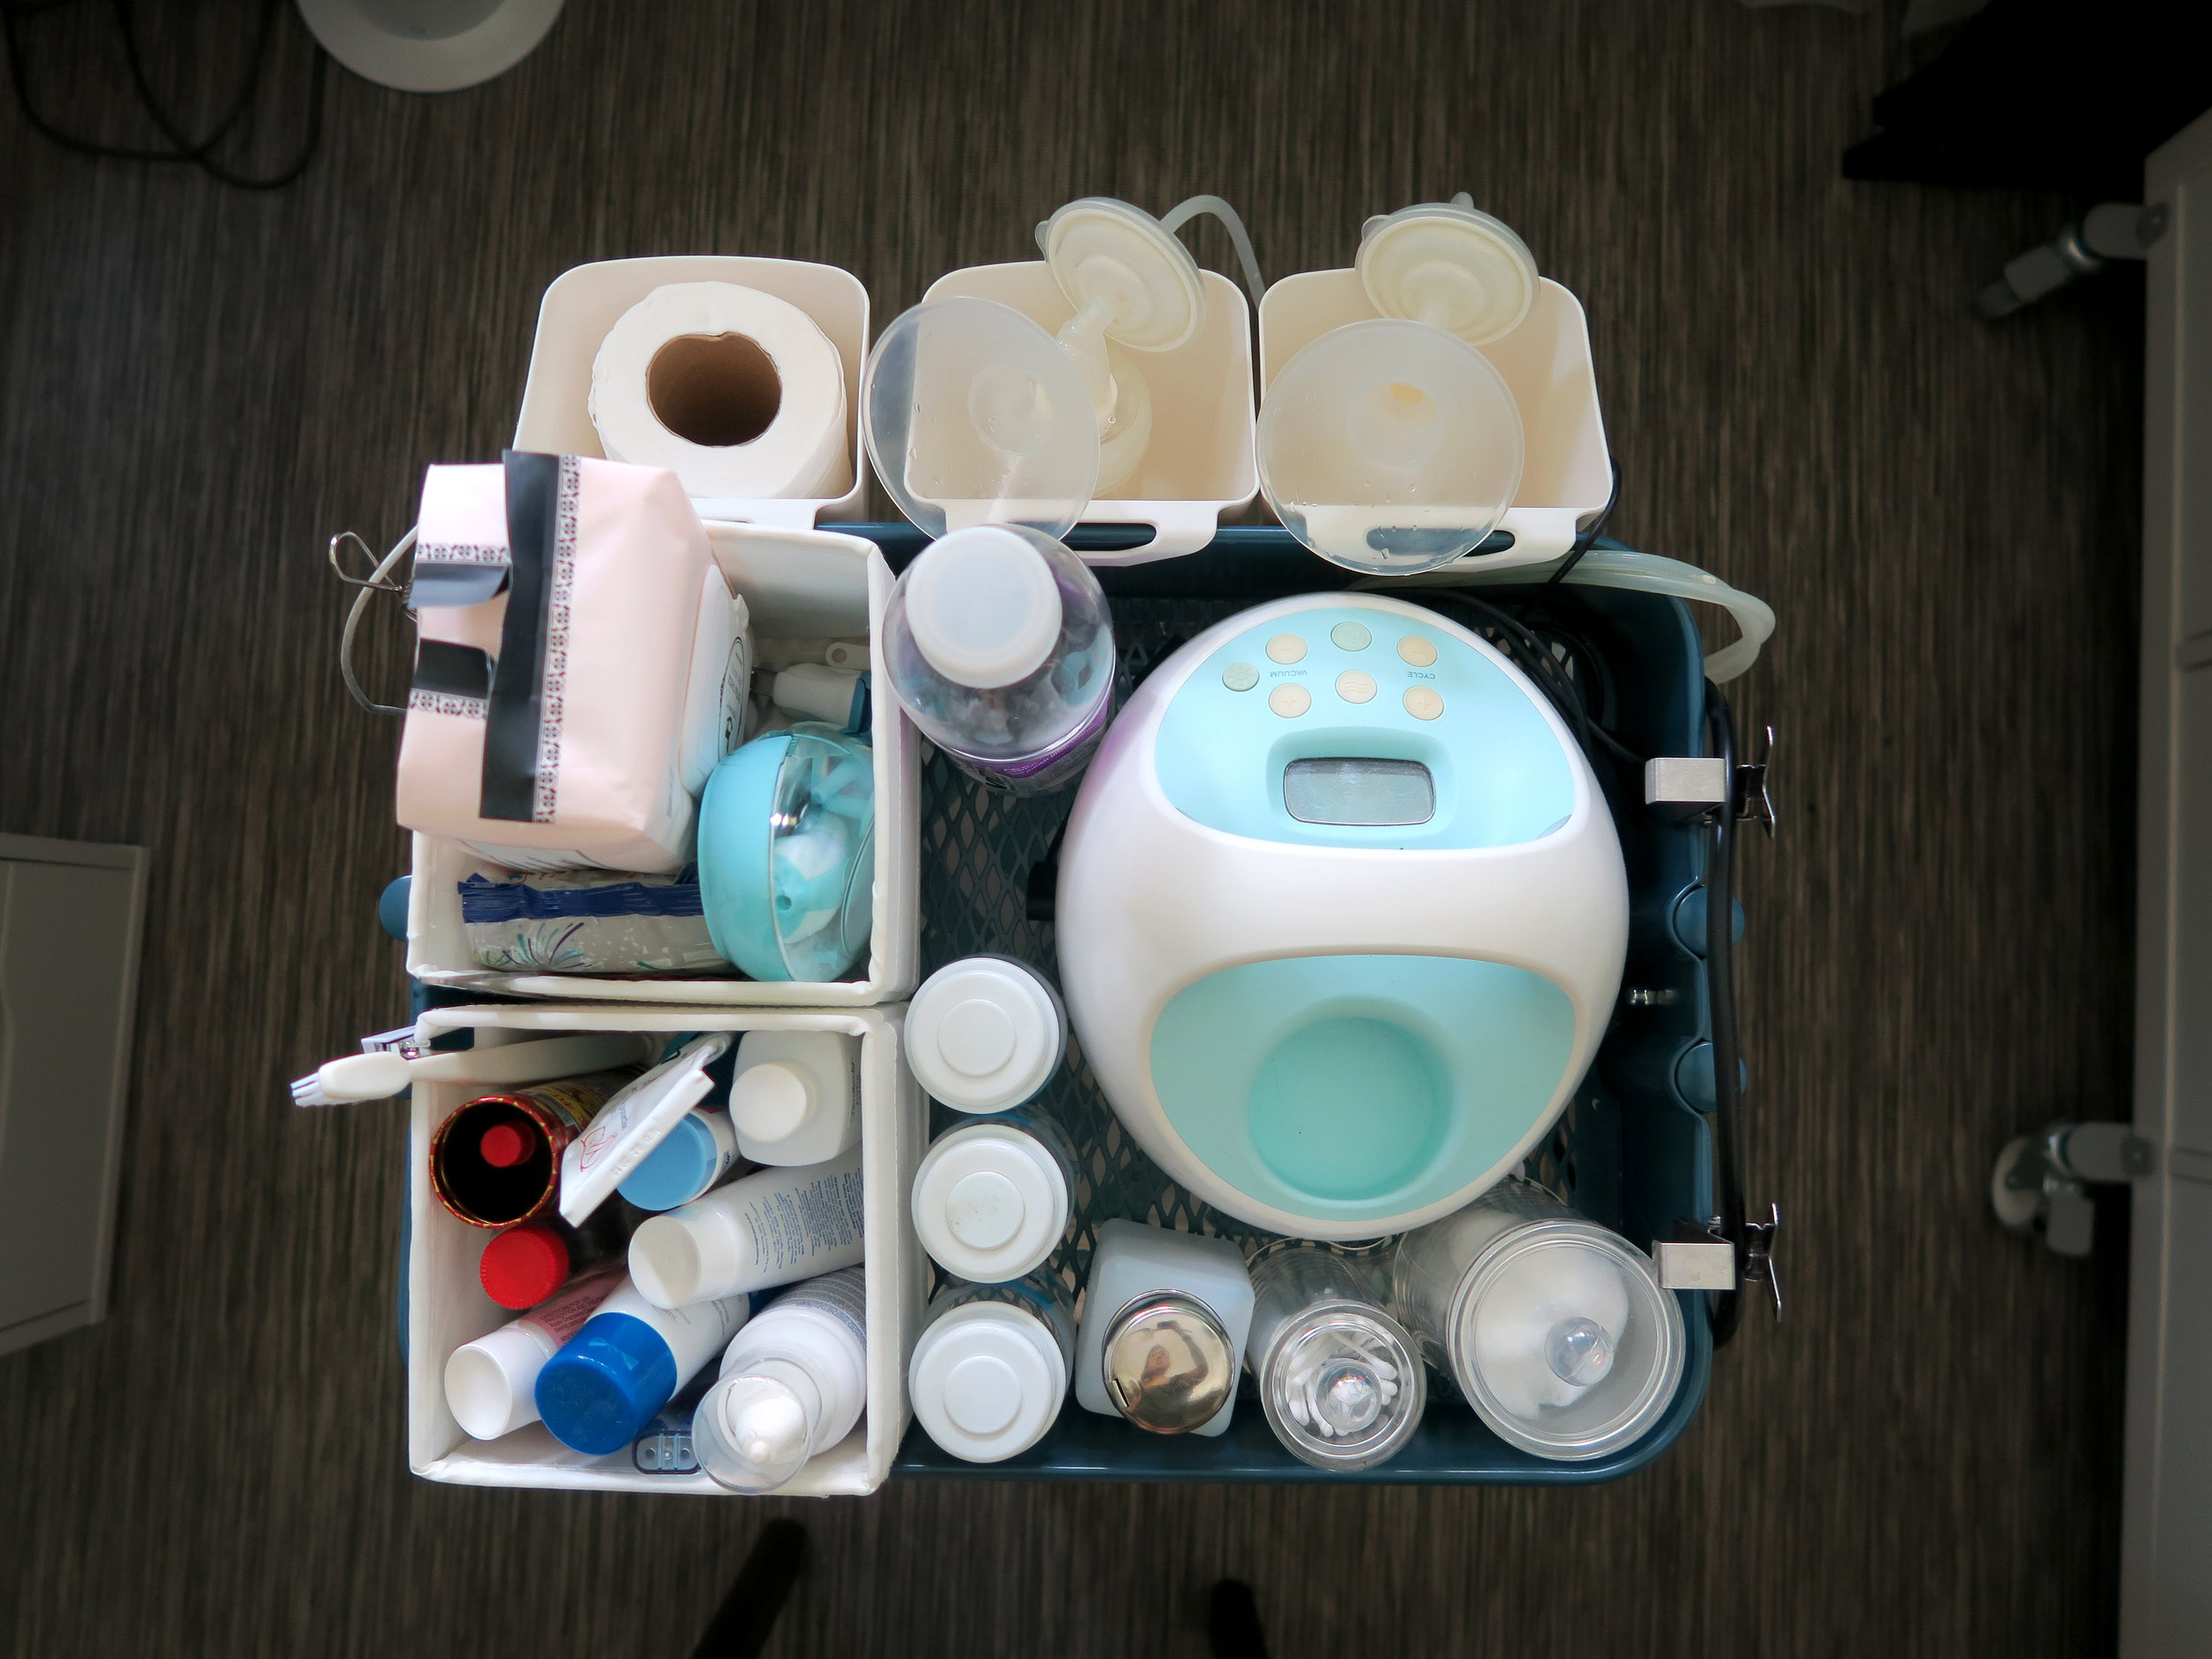 a. Pump, milk storage bottles, water bottle, cotton buds, cotton swabs, water pump (like they used in nail salons – to clean her face)  b. Wet wipes, nail clipper,  nipple cream, nasal spray, toothbrush (for her hair), baby lotions and ointments  c: Ikea SUNNERSTA Containers – Toilet roll, earphones (under toilet roll), flanges  *All organizers used are linked   here